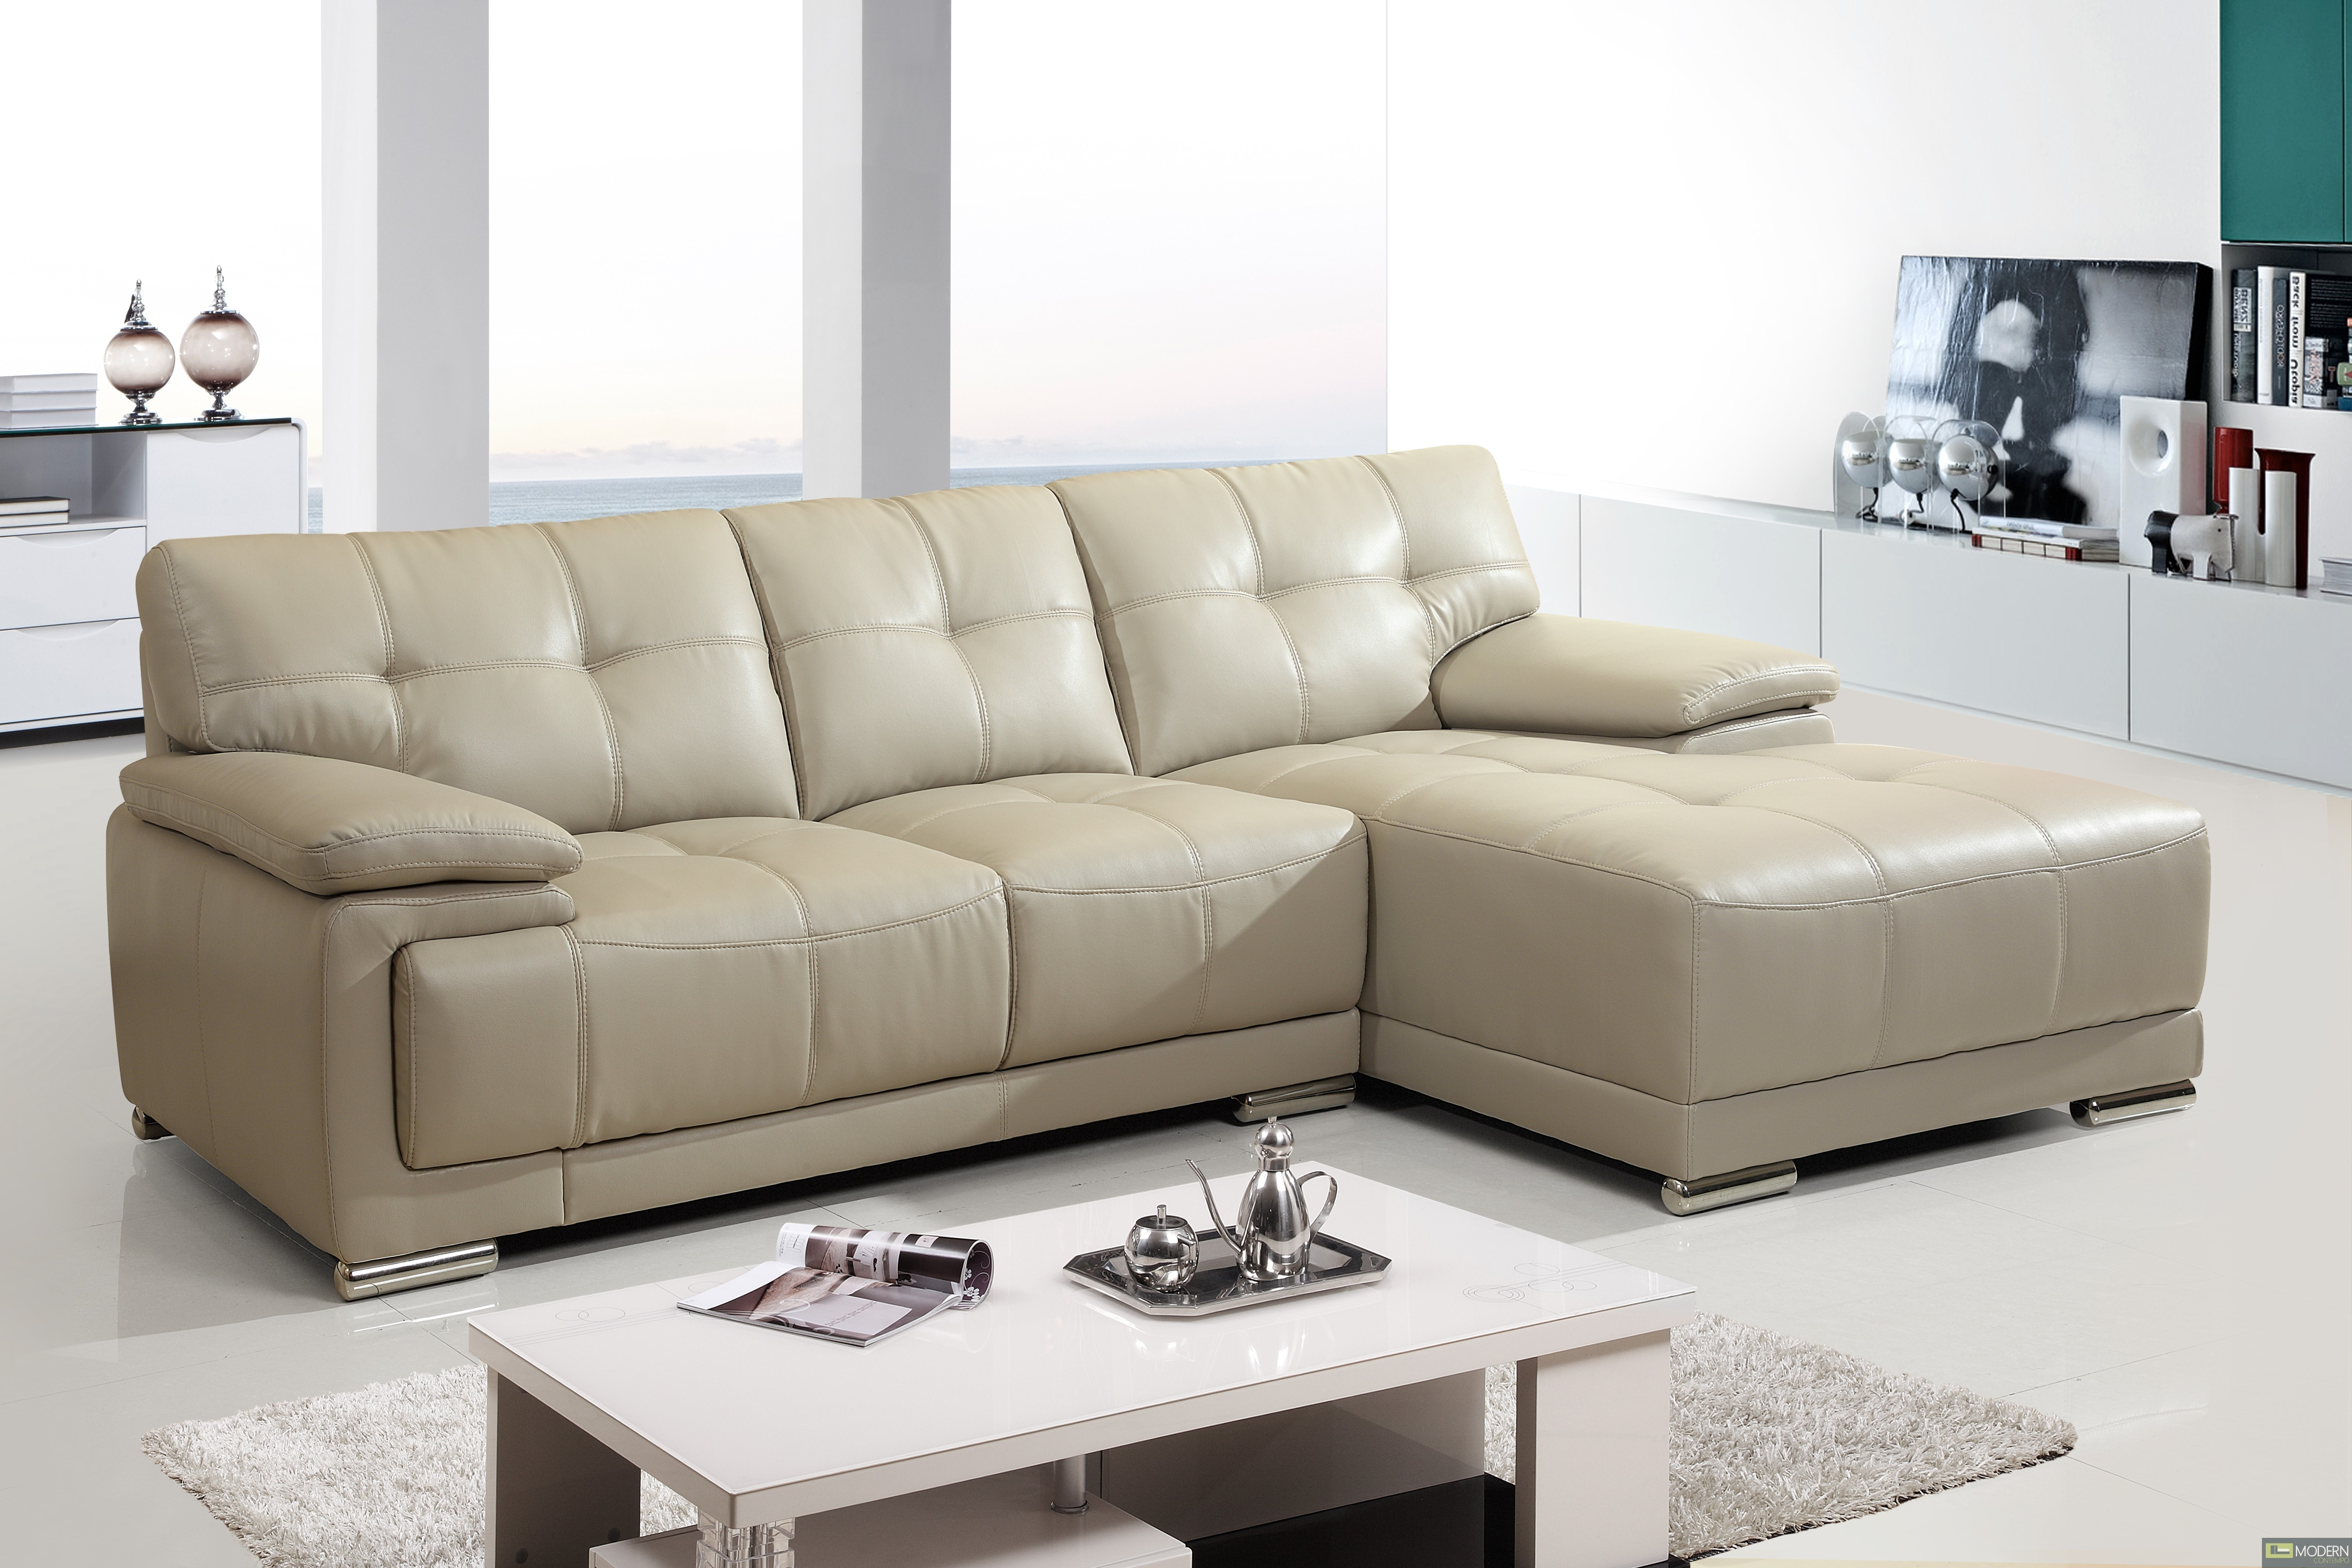 Modern Sectional Sofas Ontario Remarkable S8864 Cloud Living Room For Ontario Sectional Sofas (Image 9 of 10)